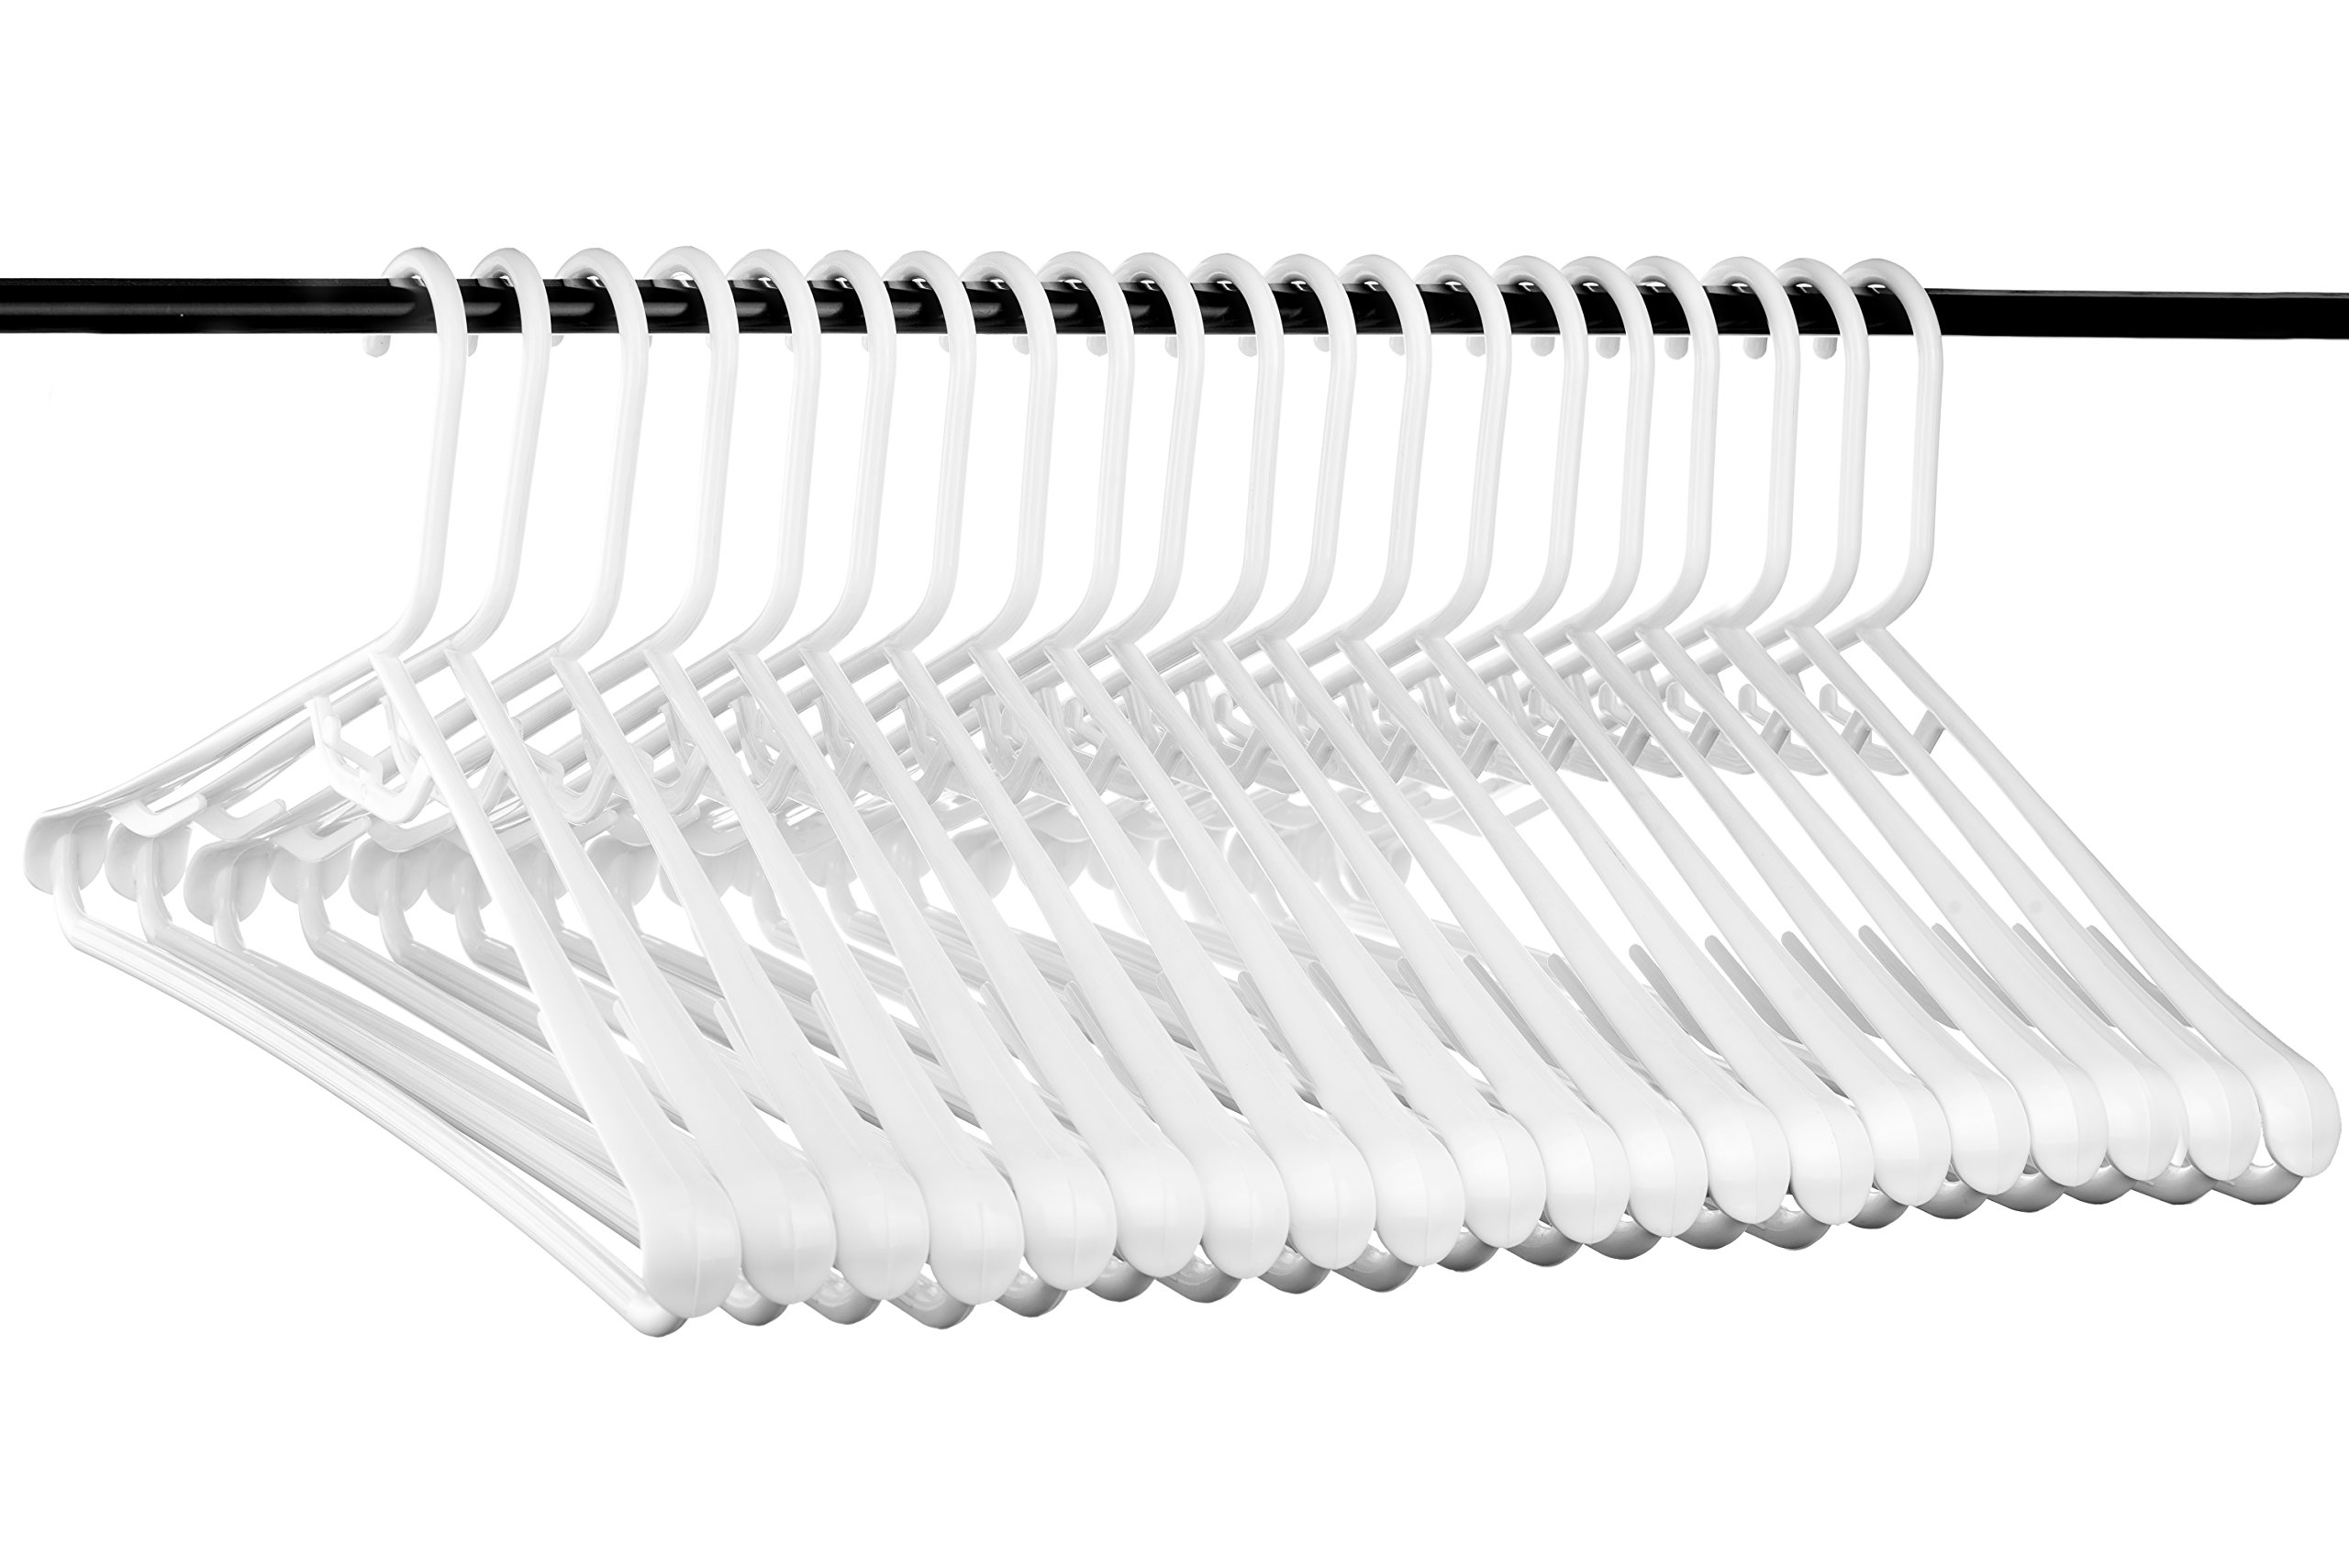 Best Wide Shoulder Heavy Duty Plastic Hangers, USA Made Strong and Long Lasting Hangers, Set of 20 by Neaties